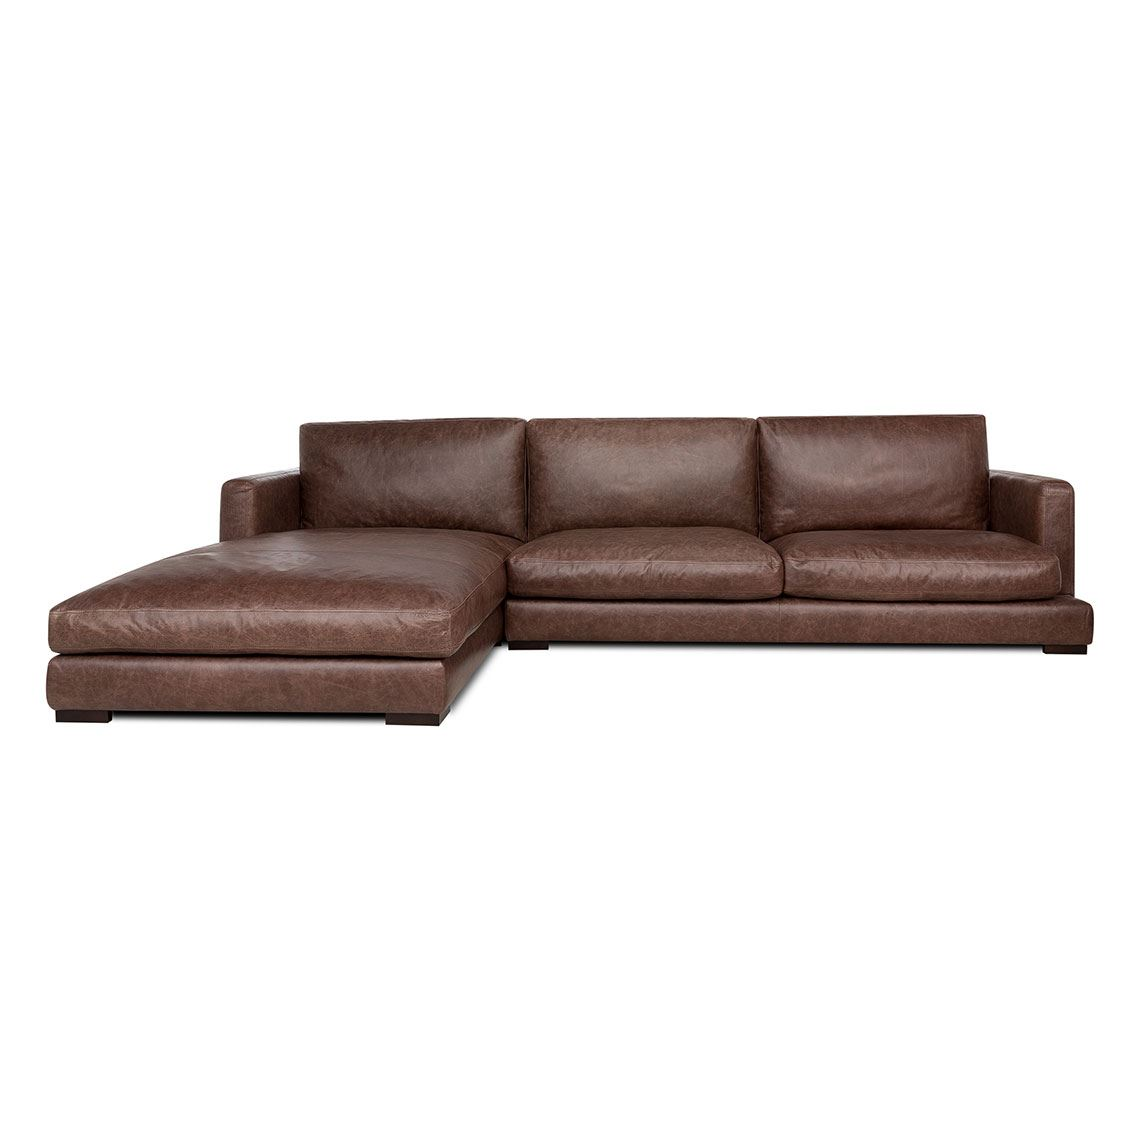 Hamilton 3 Seat Leather Modular Sofa w/ Left Chaise Size W 330cm x D 211cm x H 86cm in Chocolate Brown Leather/Foam/Fibre Freedom by Freedom, a Sofas for sale on Style Sourcebook